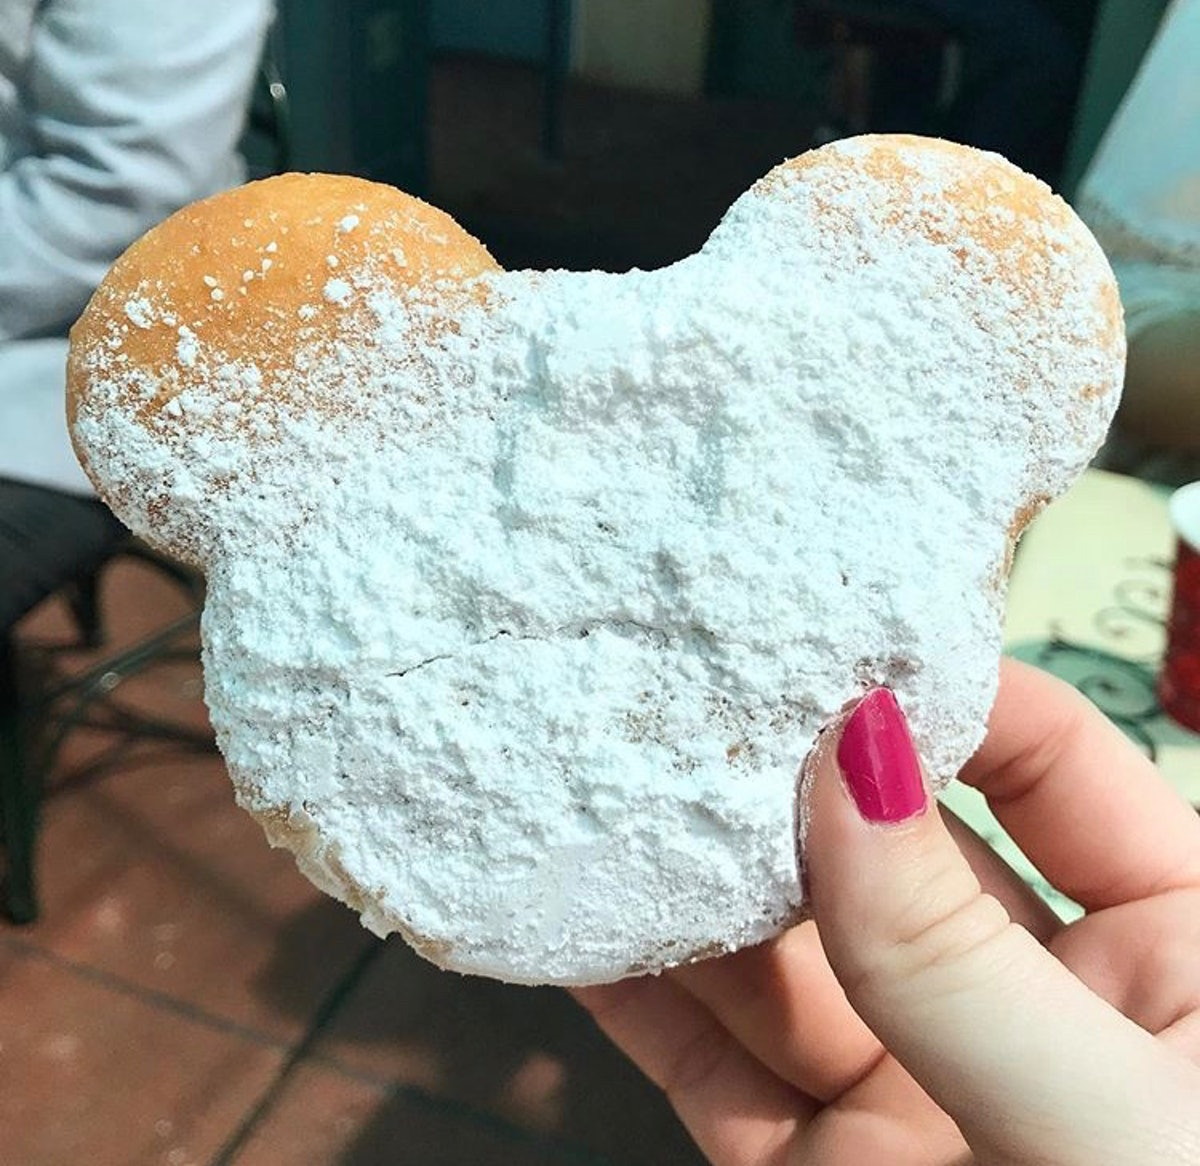 A Mickey Mouse-shaped beignet at Disneyland needs a Mickey-shaped food caption for Instagram.